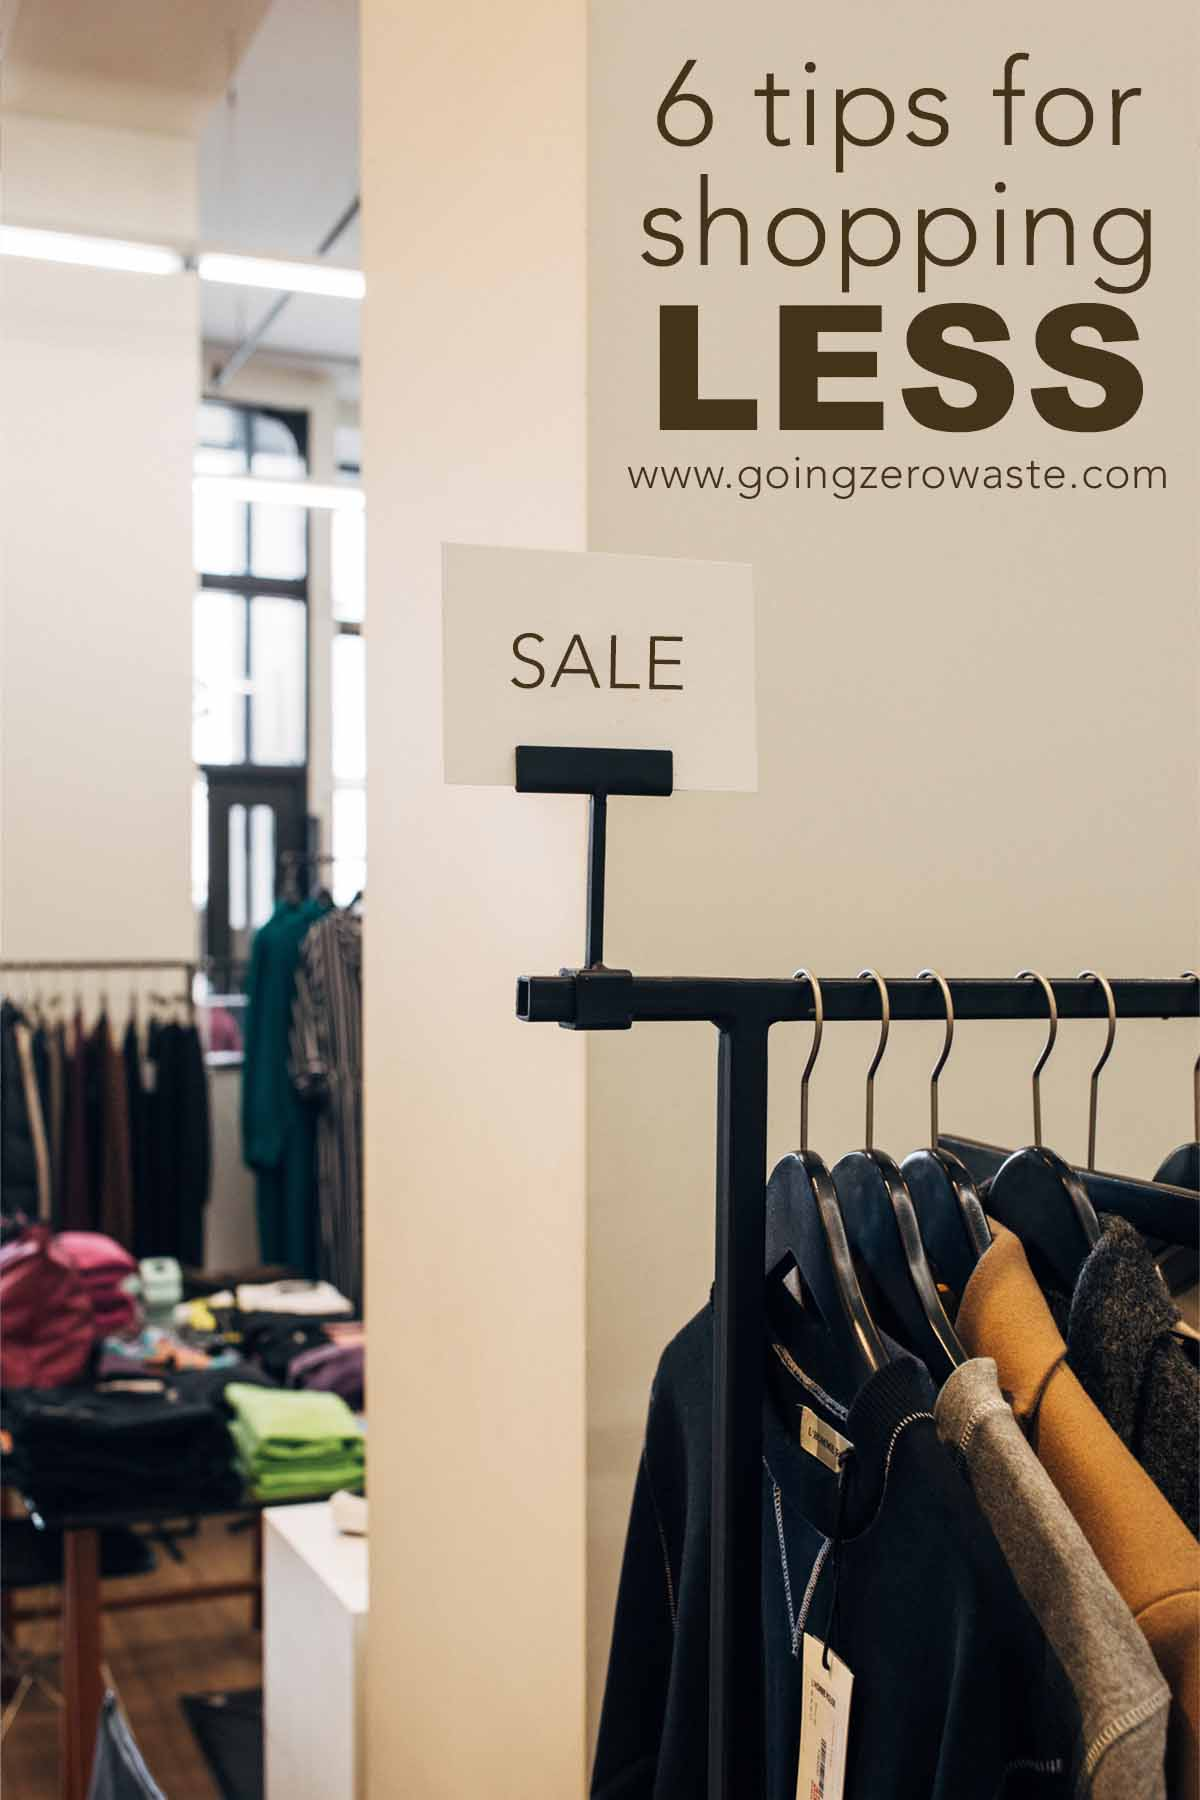 6 Tips for Shopping Less